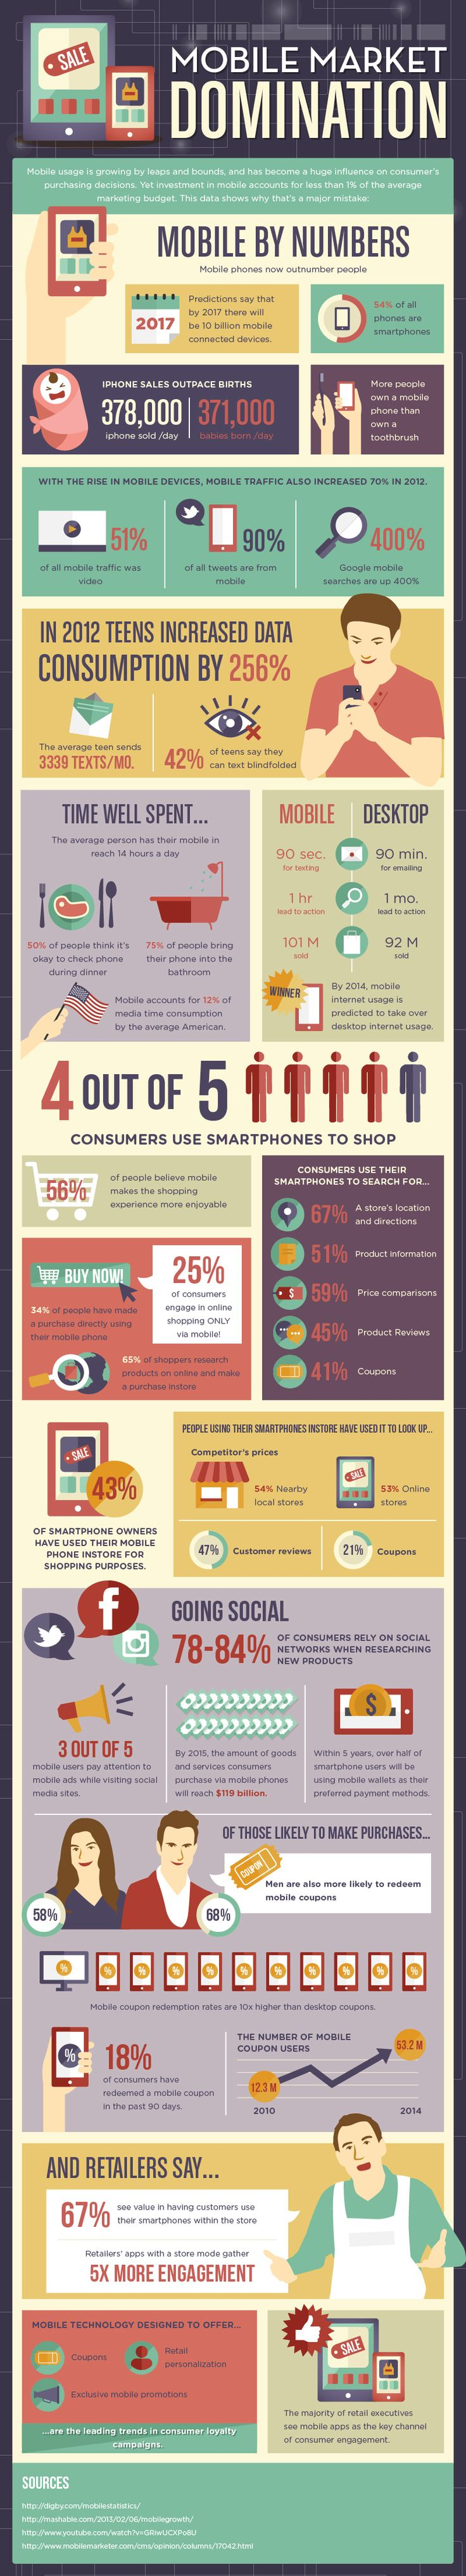 Mobile Marketing and Statistics